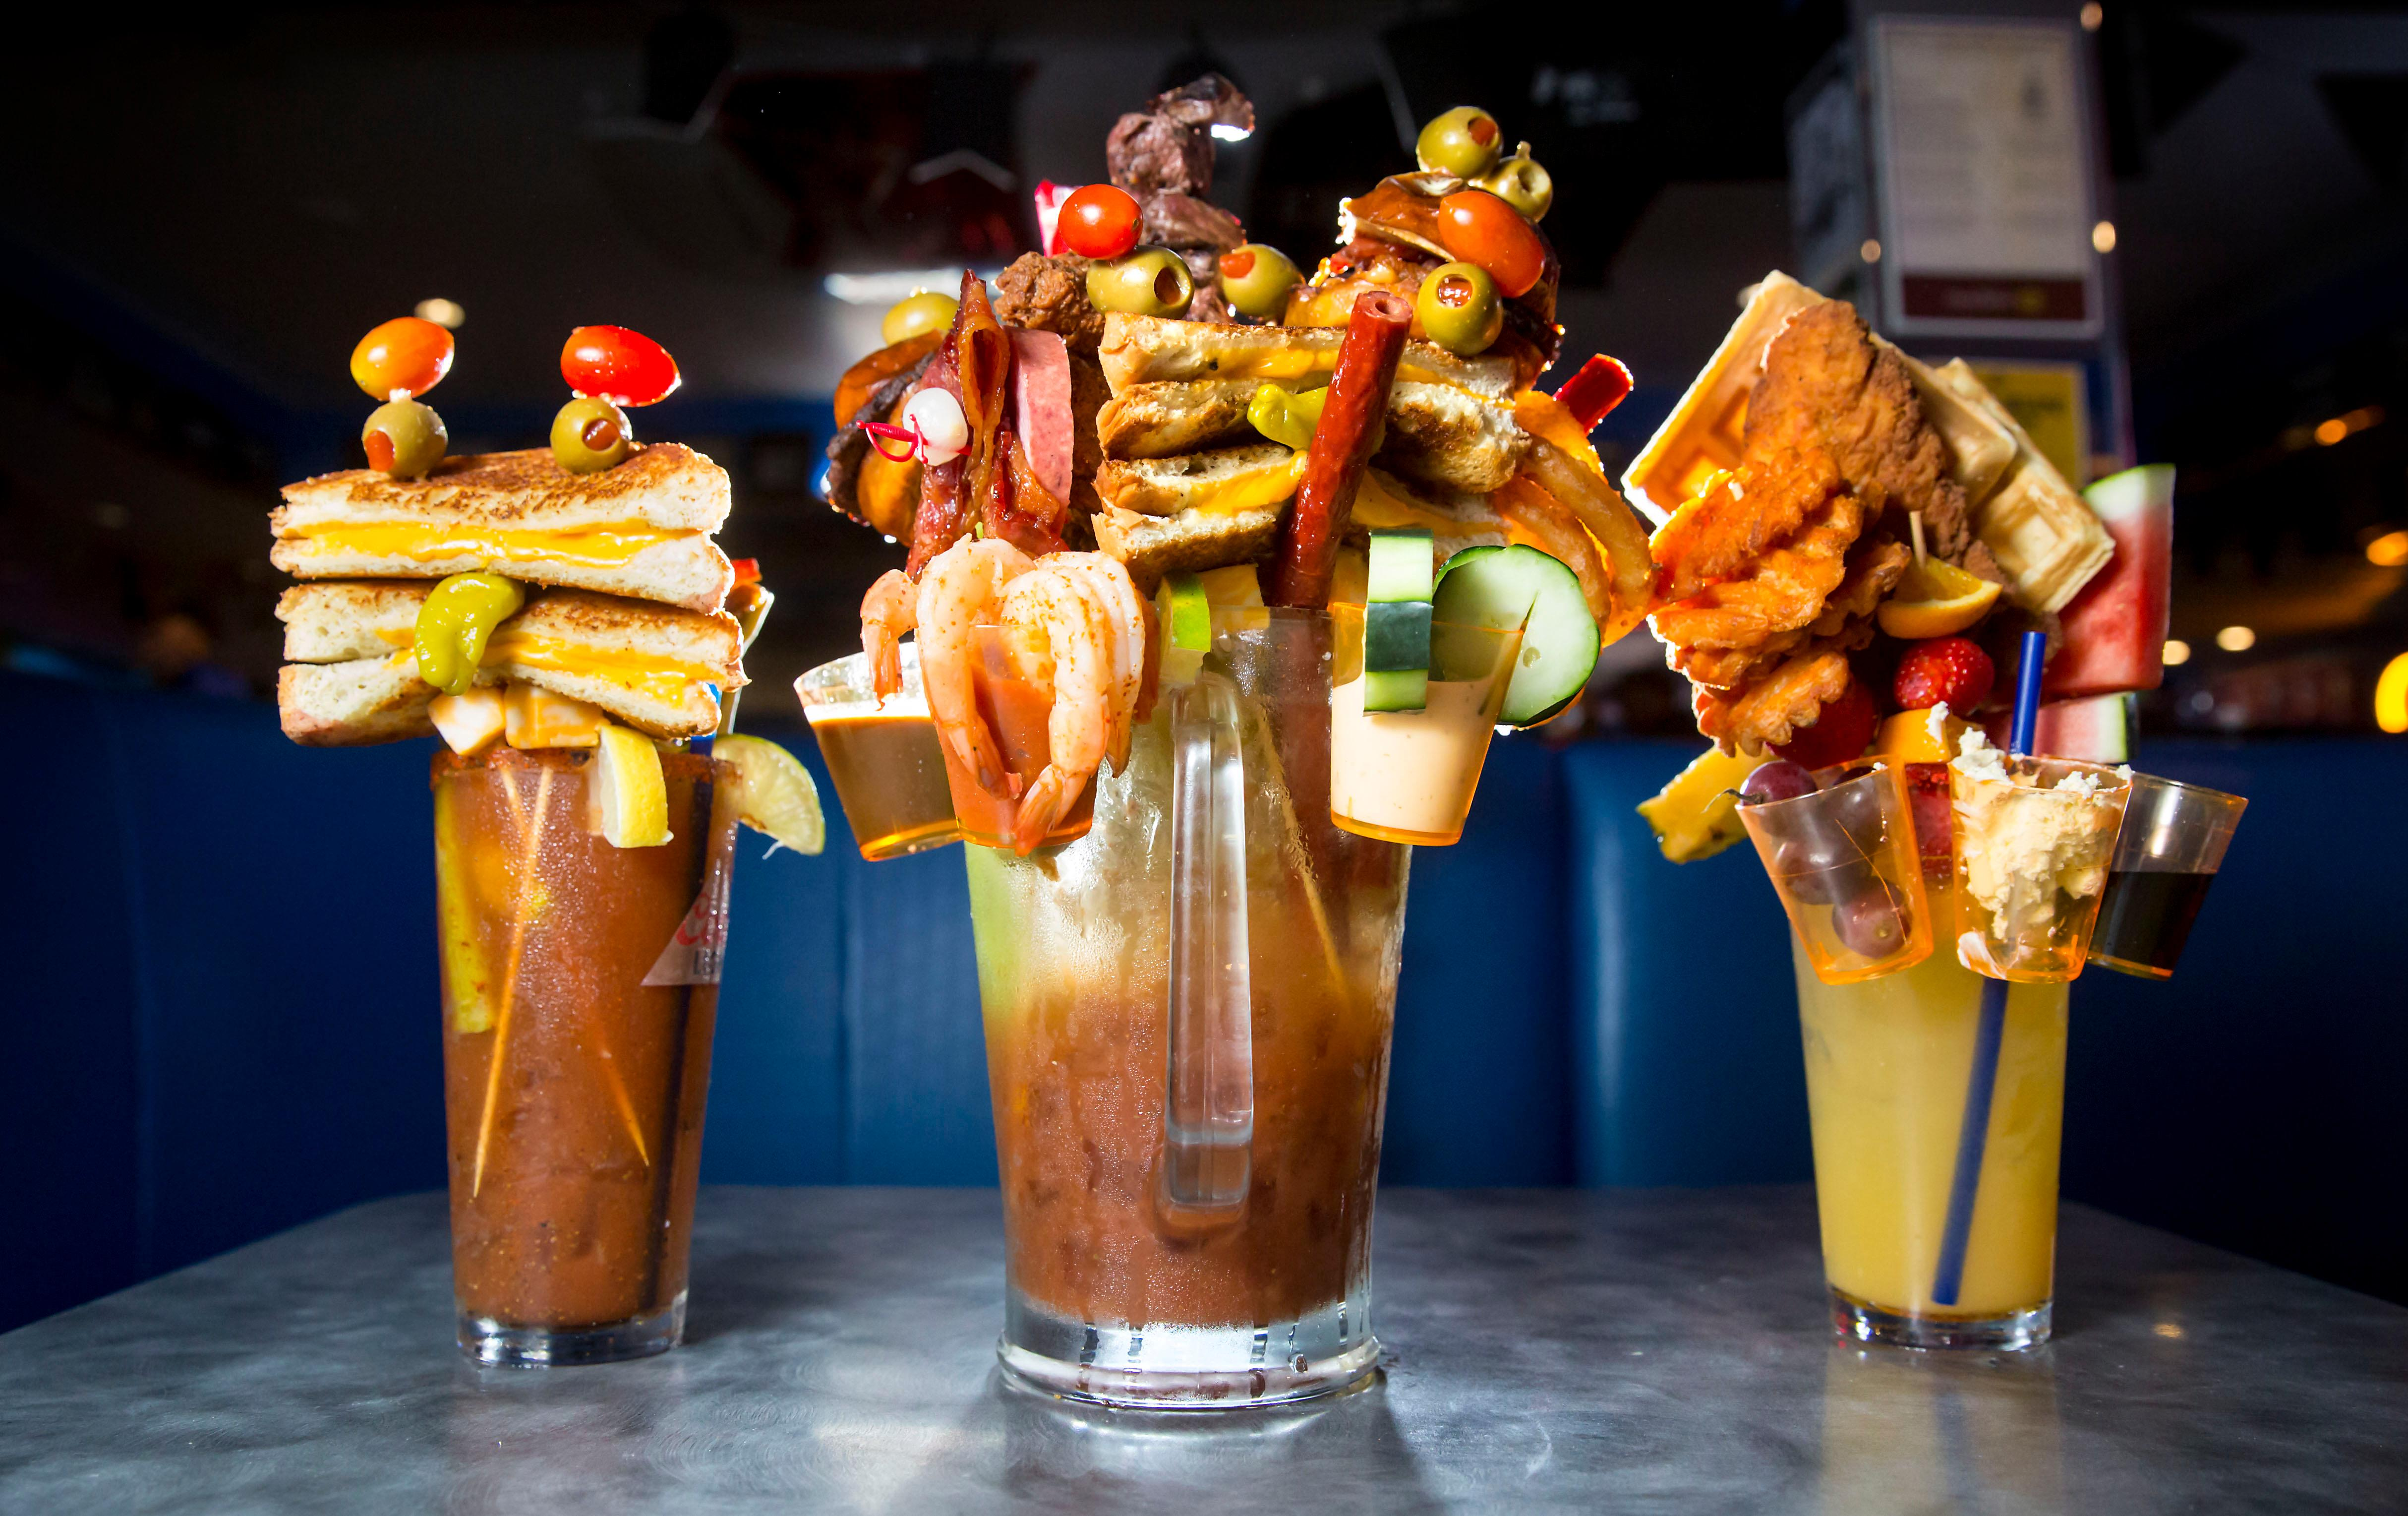 The Southern Bloody Mary (Chicken and Waffles, 22oz Manmosa Base), The Grilled Cheese (22oz Bloody Mary with Grilled Cheese Sandwich and the Big Mother Mary (Full pitcher of bloody mary, grilled cheese sandwich, steak bites, ribs, salami, olives, sliders, onion rings, shrimp cocktail, fried shrimp, cucumber, candied bacon bows, and meat stick straws). The Big Mother Mary HAS to be shared by two people. The Garage Bar &amp;amp; Grill in Bremerton, WA. (Sy Bean / Seattle Refined)<p></p>